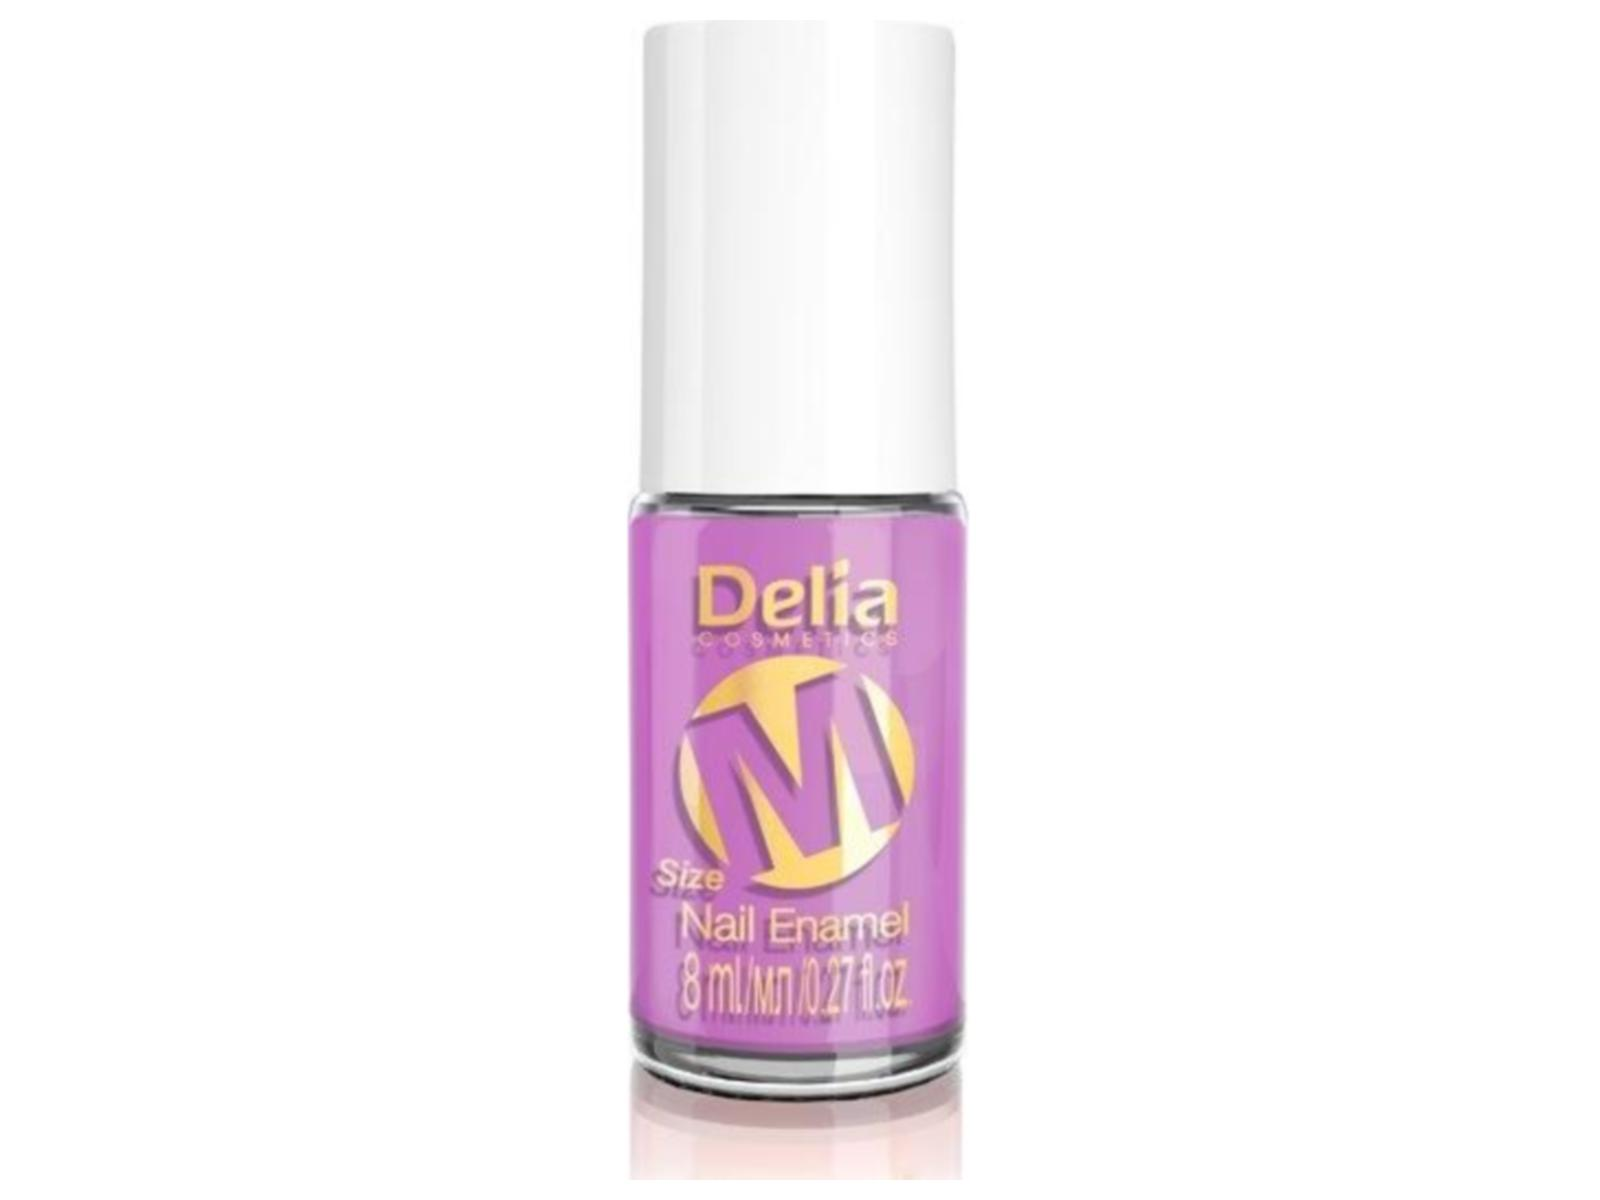 Delia Cosmetics Size M Emalia do paznokci 6.05 8ml